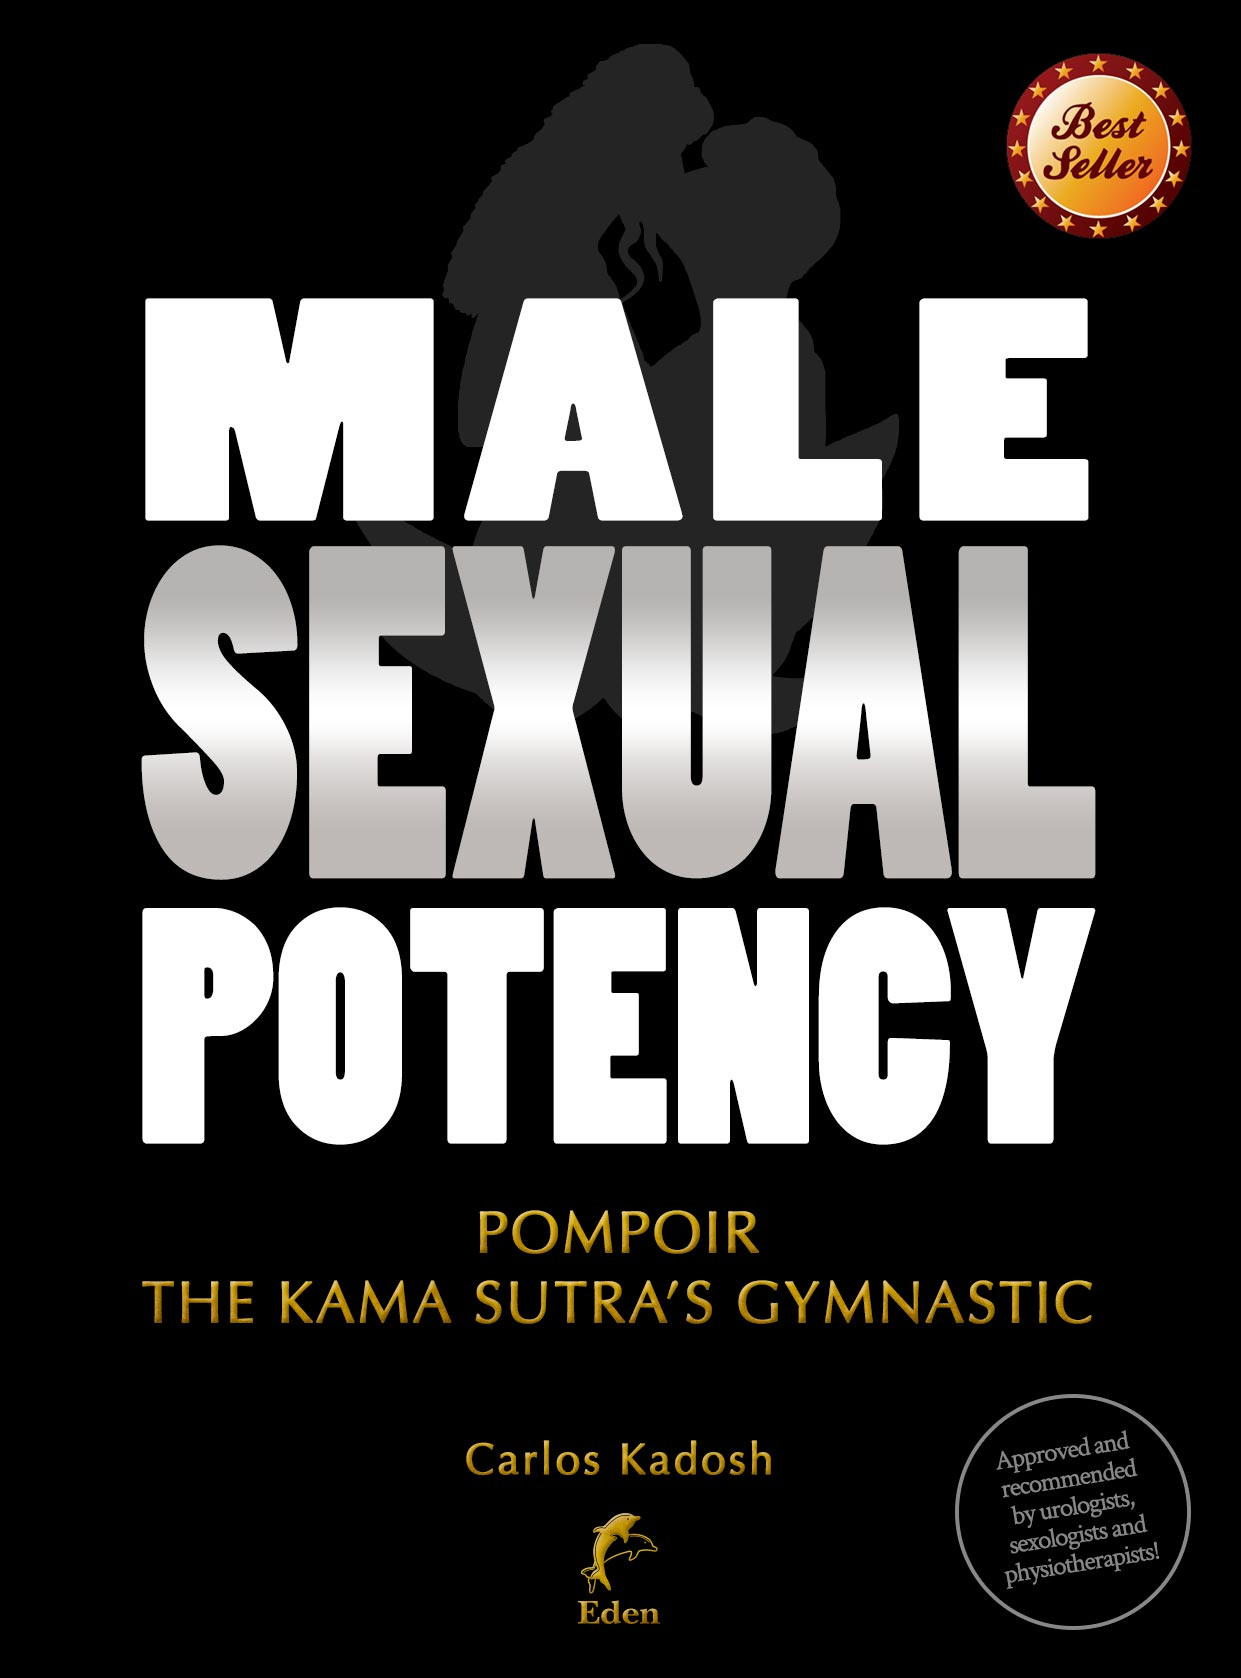 Male Sexual Potency – Pompoir – The Kama Sutra's Gymnastic